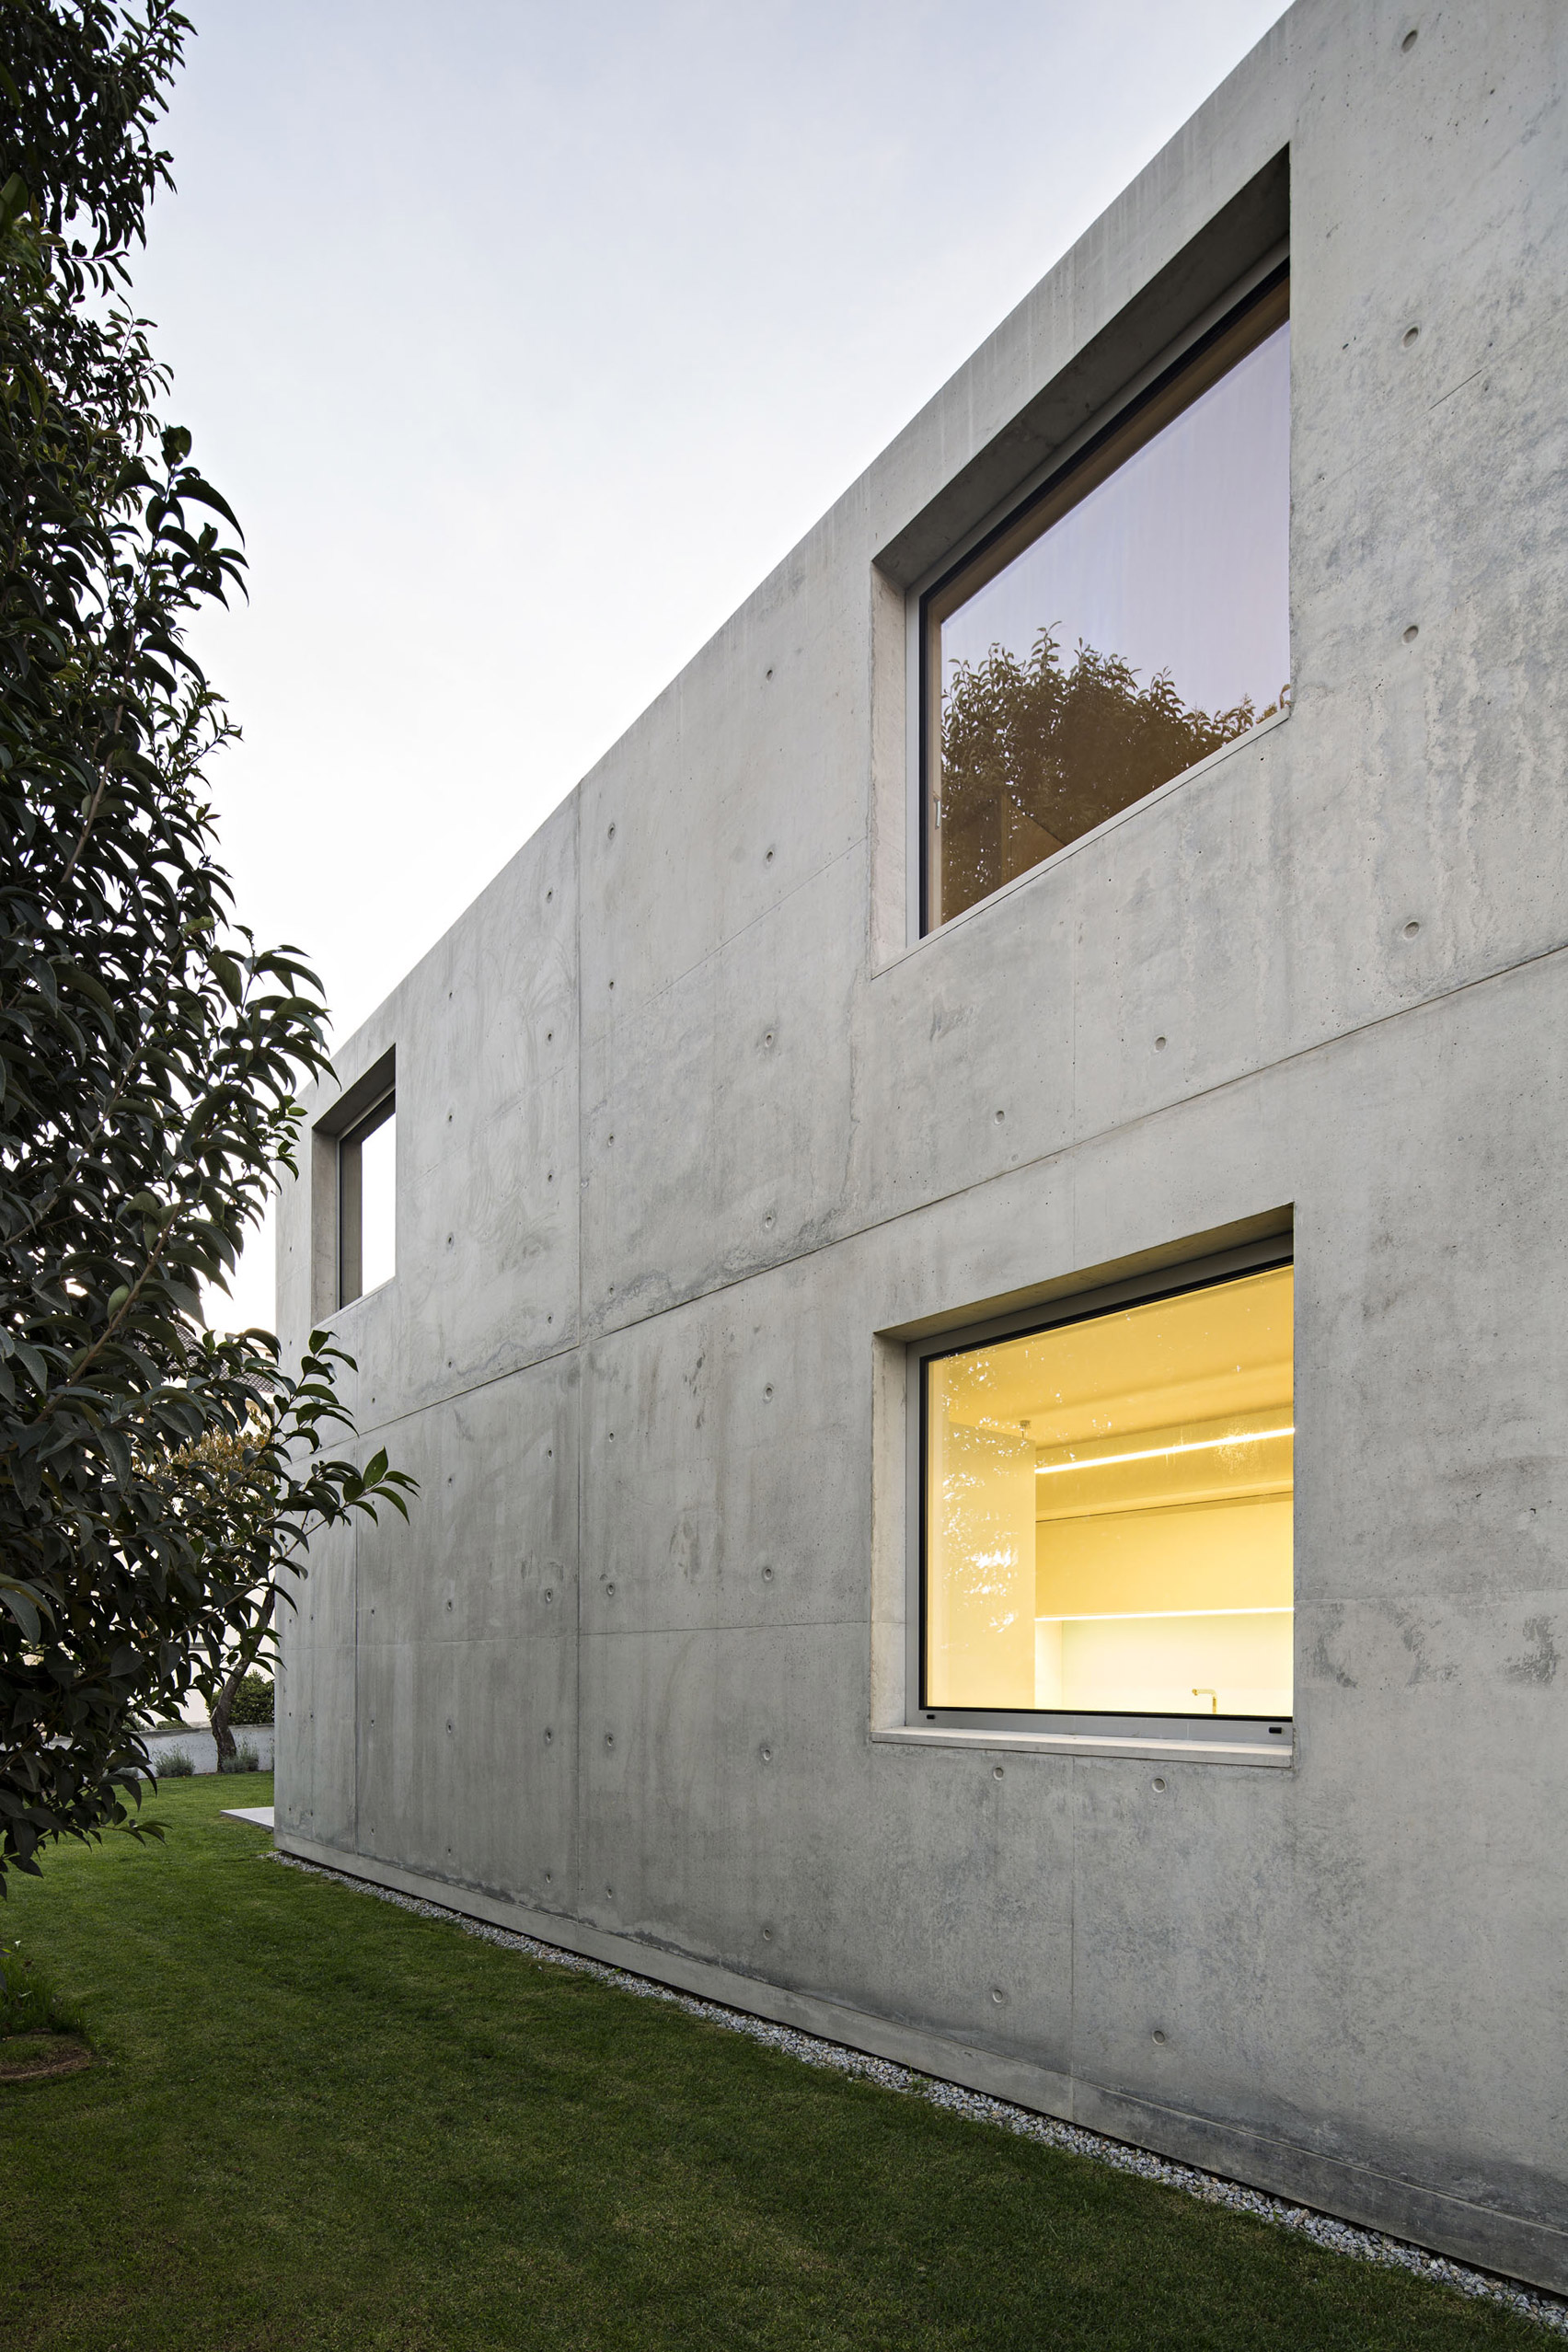 House in Serralves by João Vieira Campos